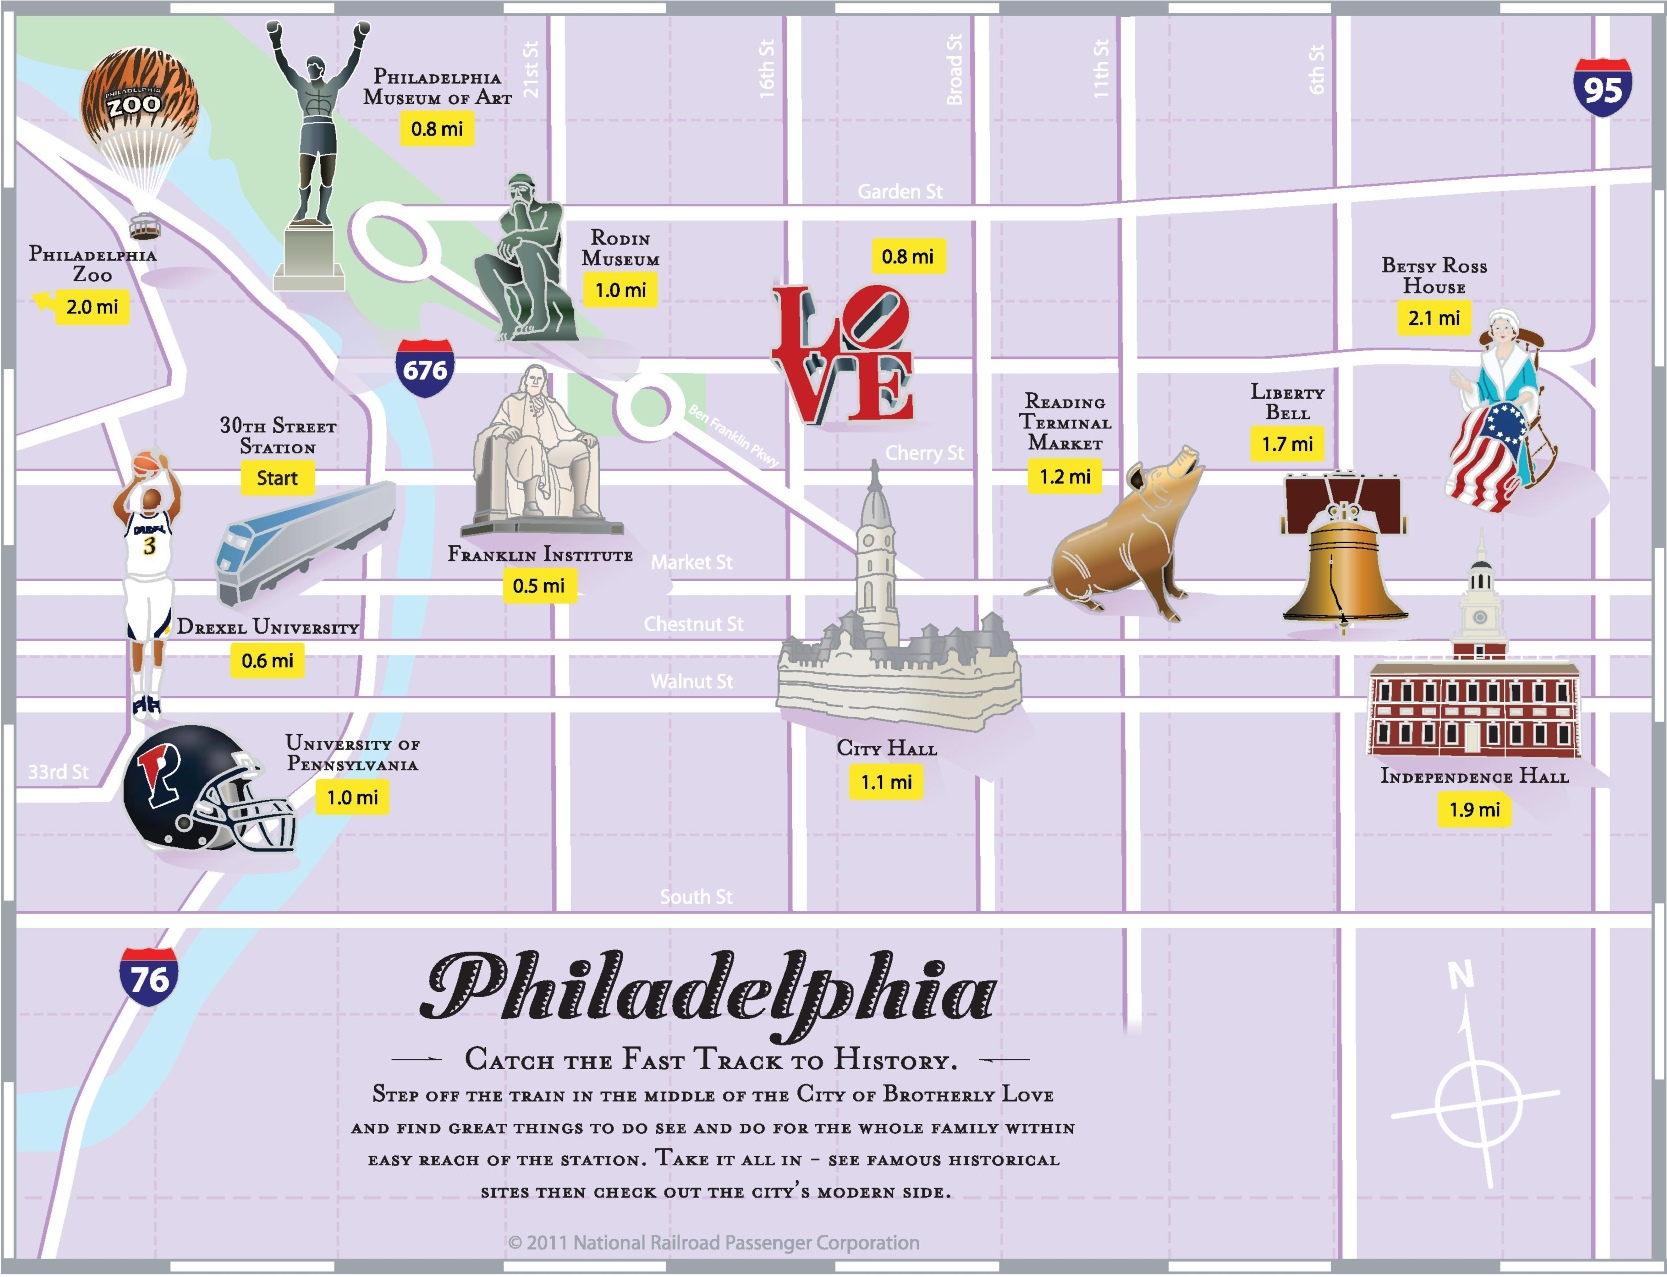 Philadelphia tourist attractions map – Philadelphia Tourist Map